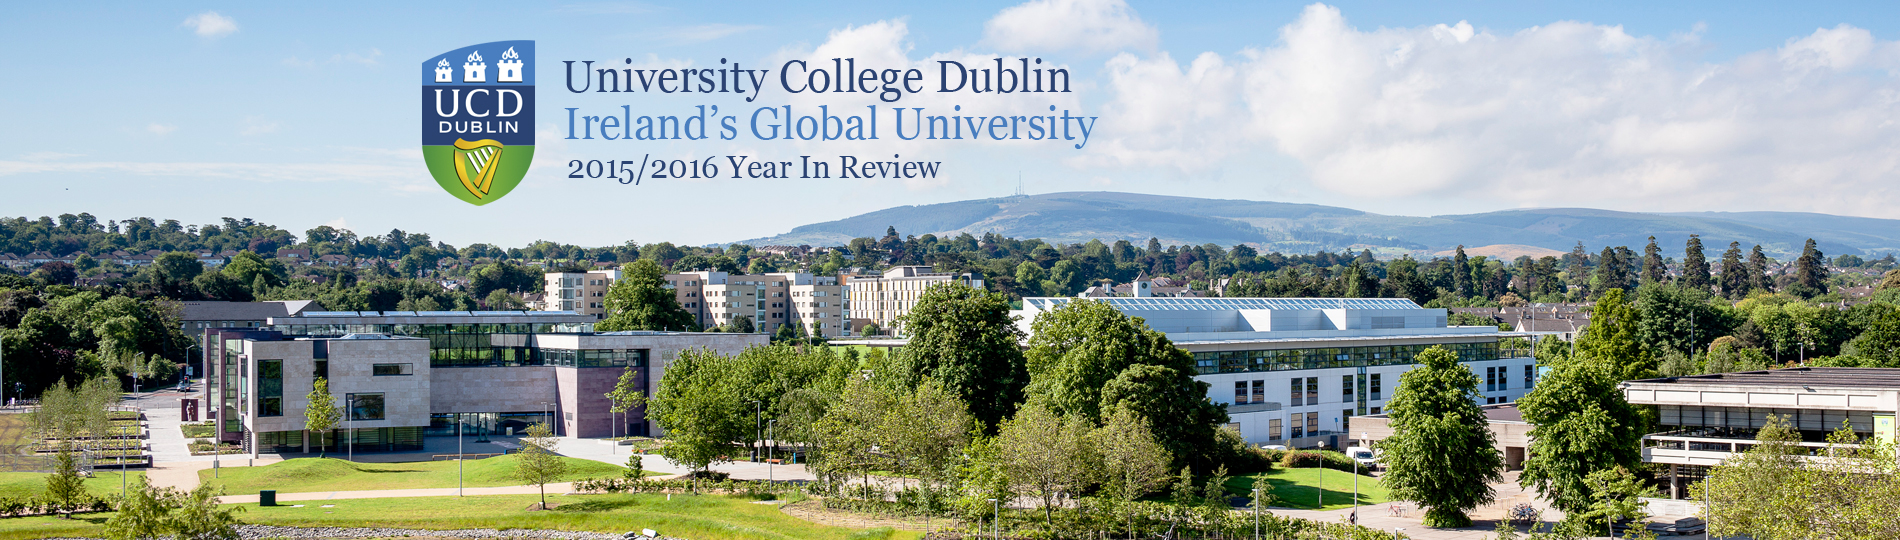 critique of university college dublin s alcohol Trinity has a better reputation, student life and international opportunities although i hate to say it what is your review of university college dublin.